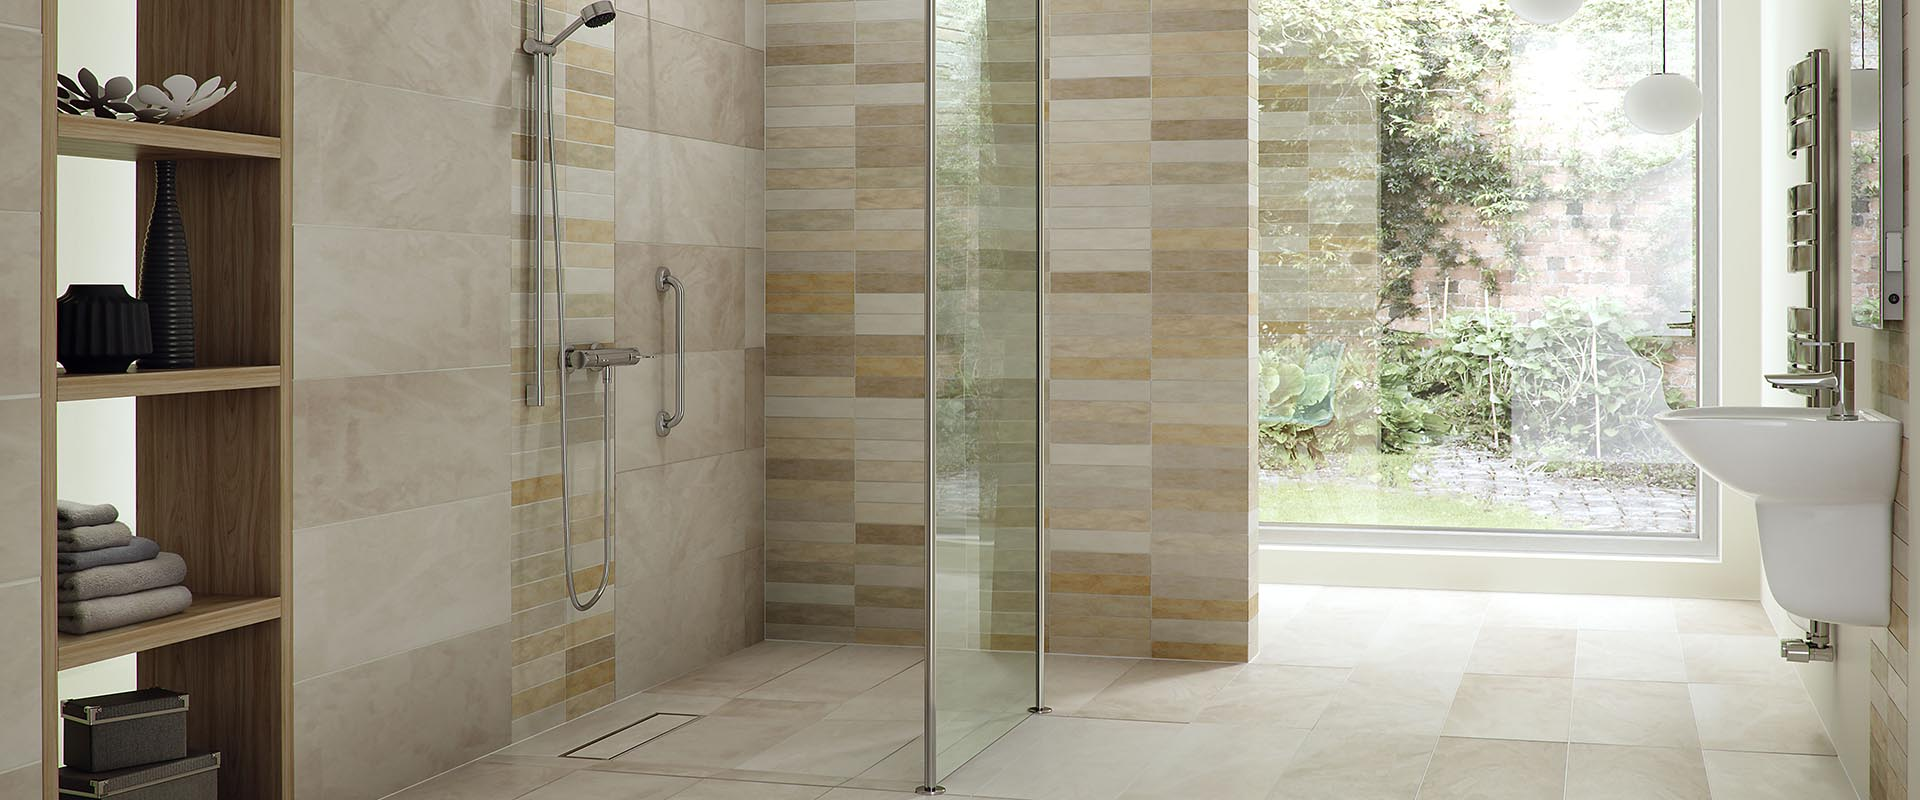 Bathroom showrooms canberra - We Cannot State Strongly Enough How Important It Is To Use Quality Materials And Will Explain In Detail Specific Examples Of What Commonly Occurs When